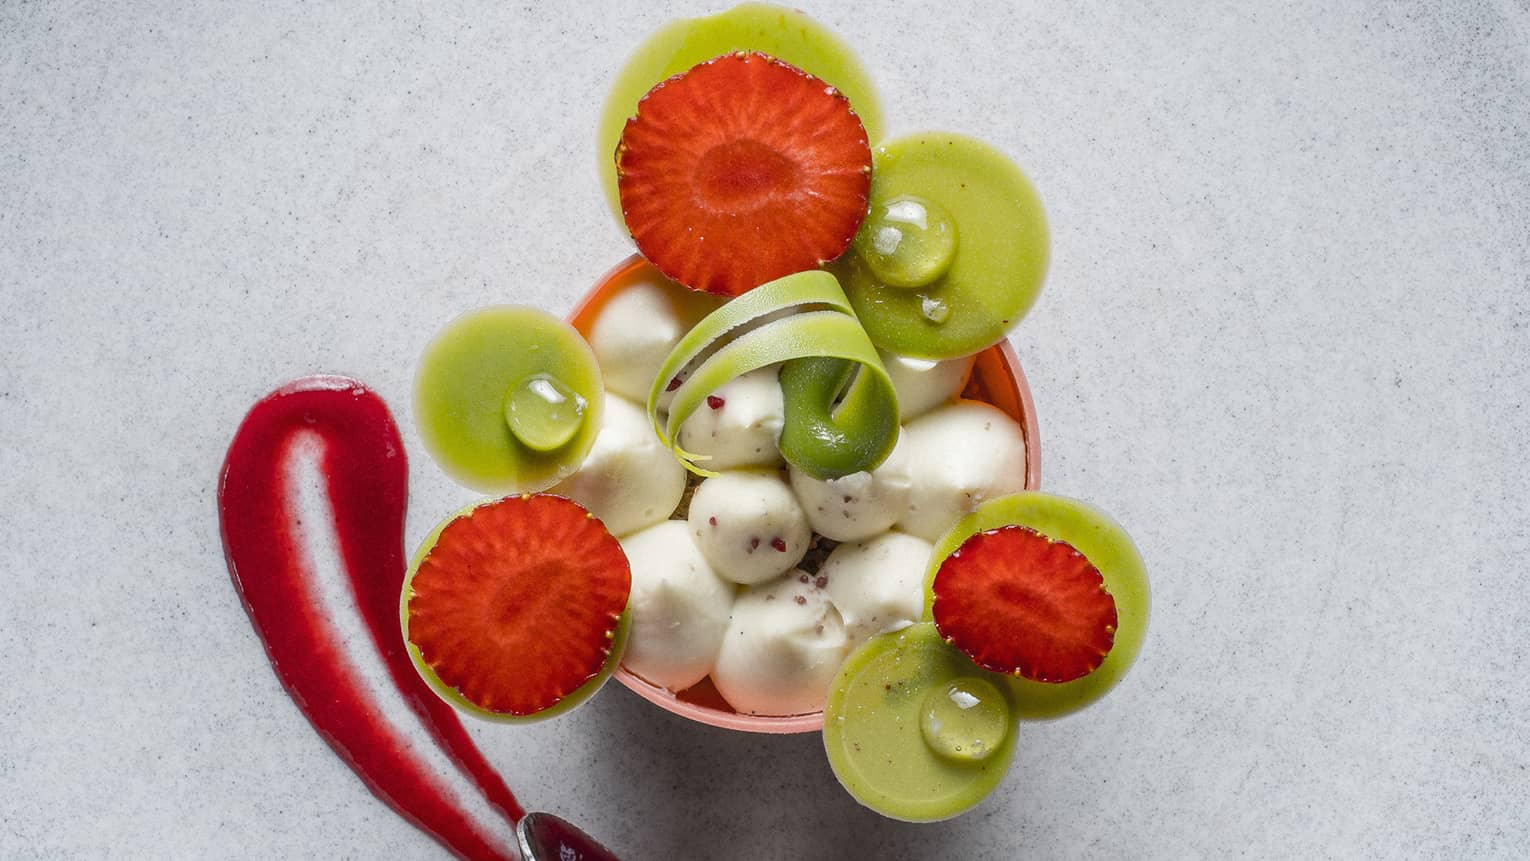 Artisanal dessert, small ice cream scoops garnished with artistic fruit slices, sauce